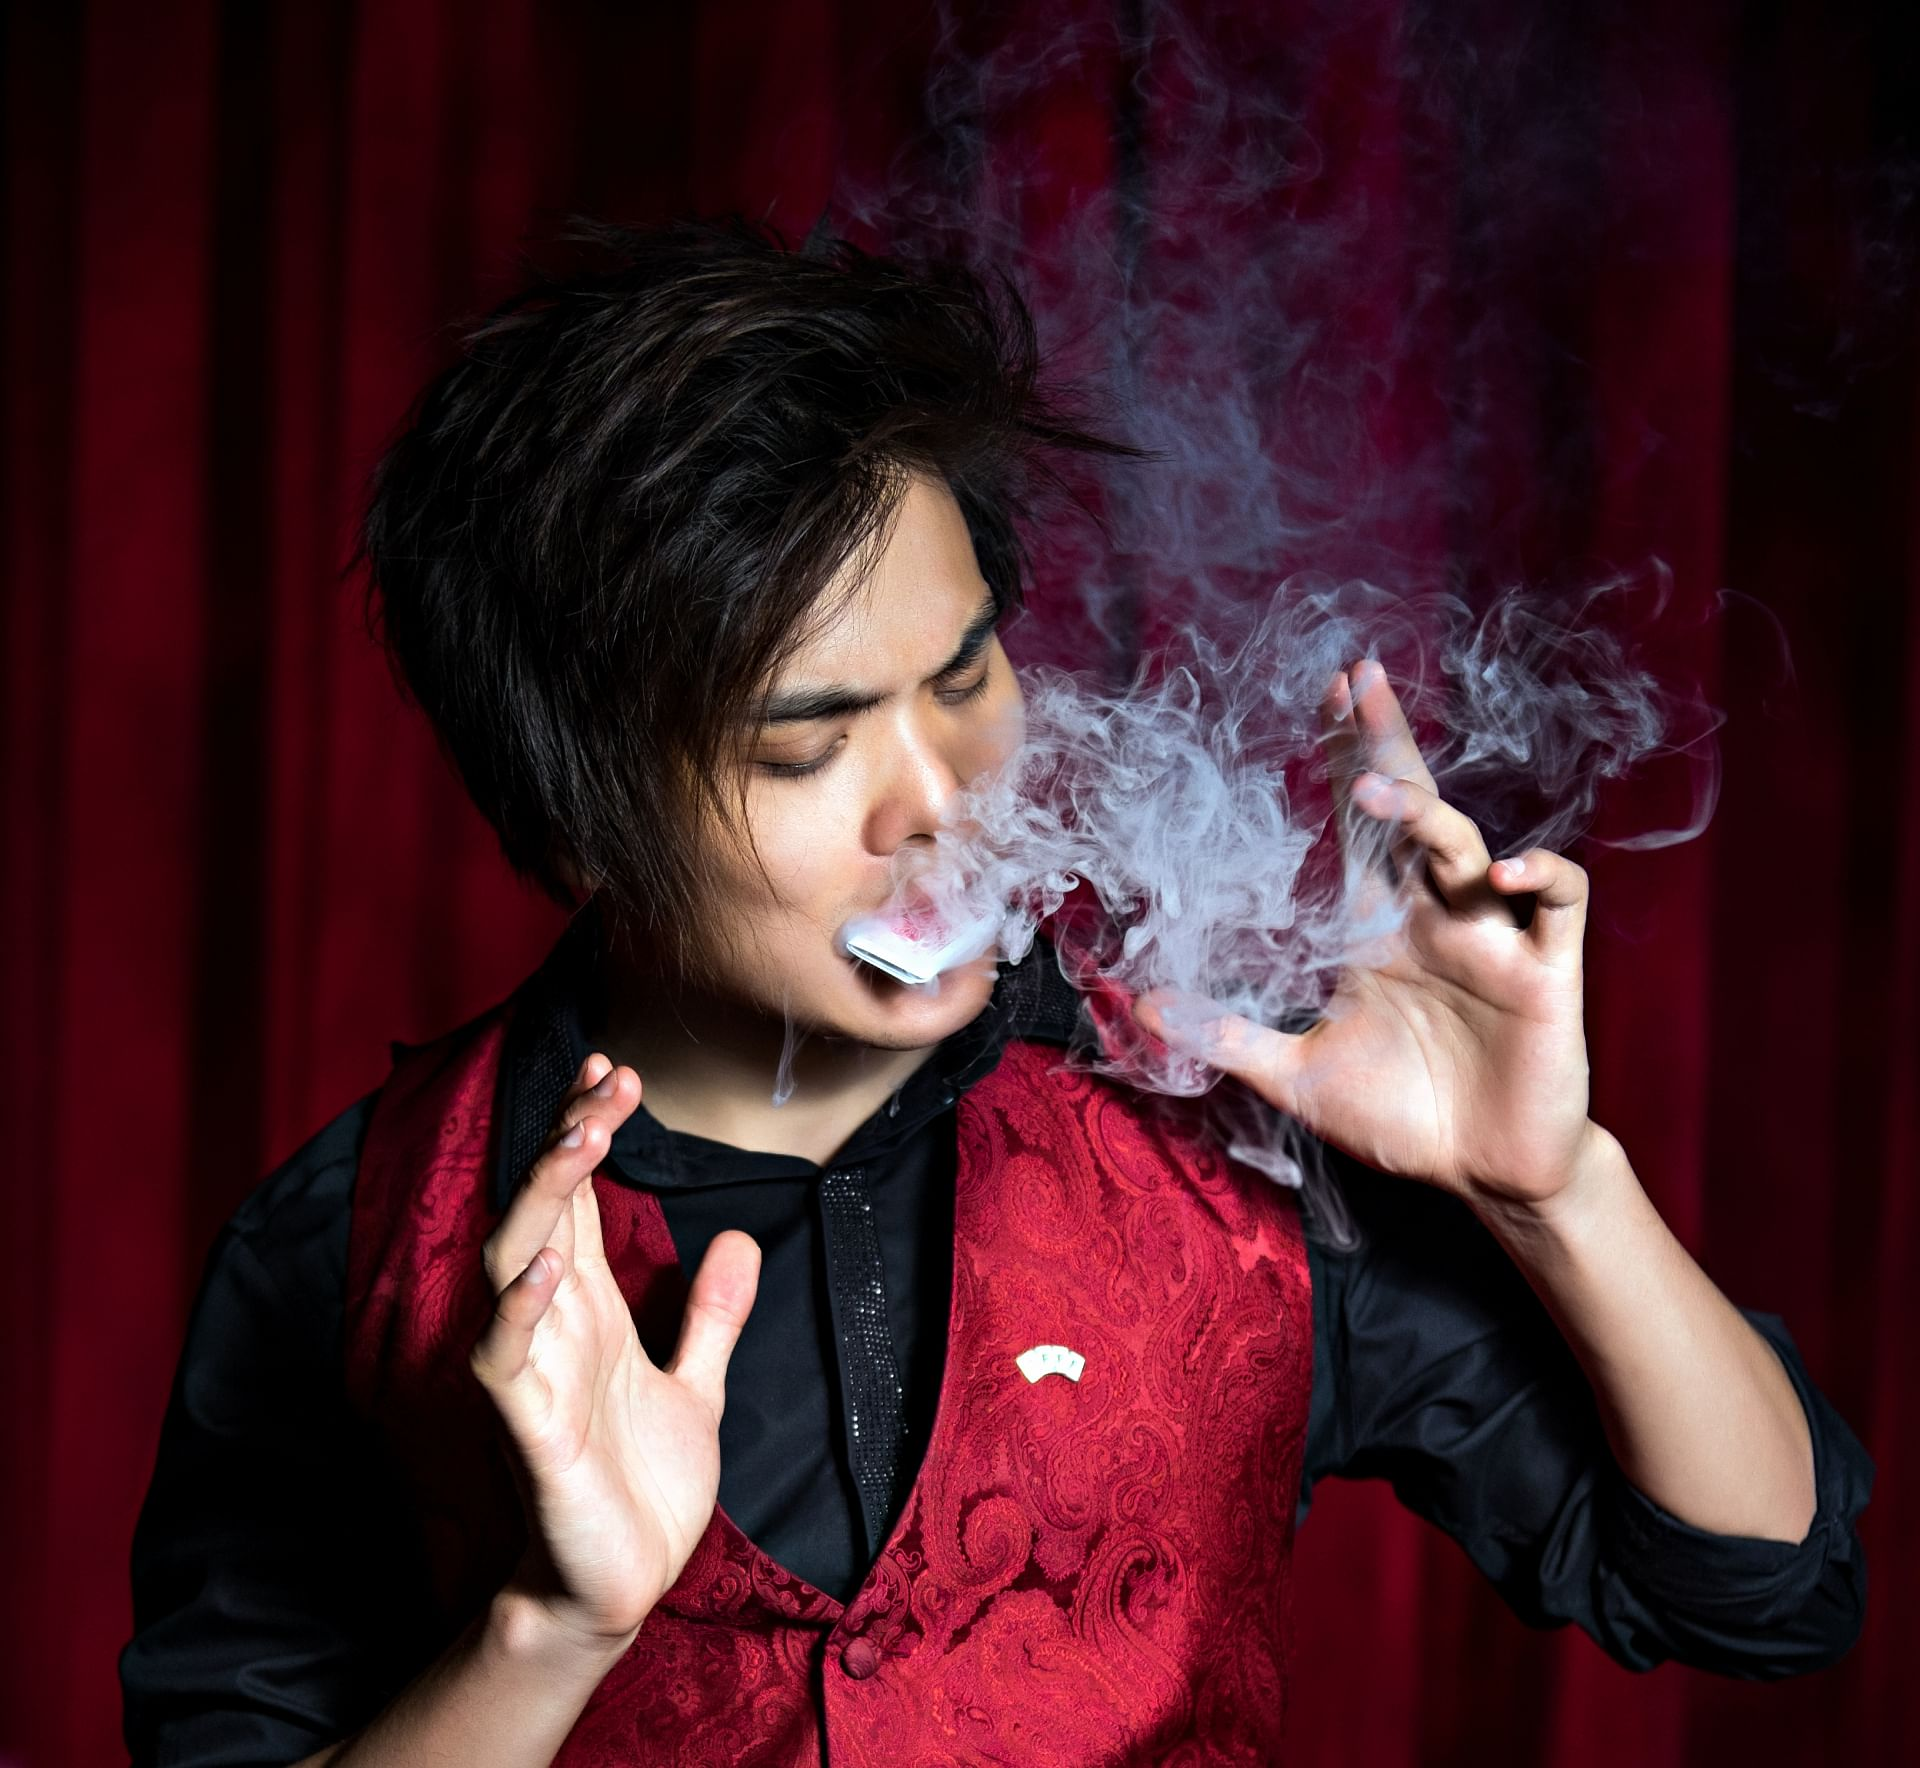 Magician Shin Lim performs his dream act on america's got talent